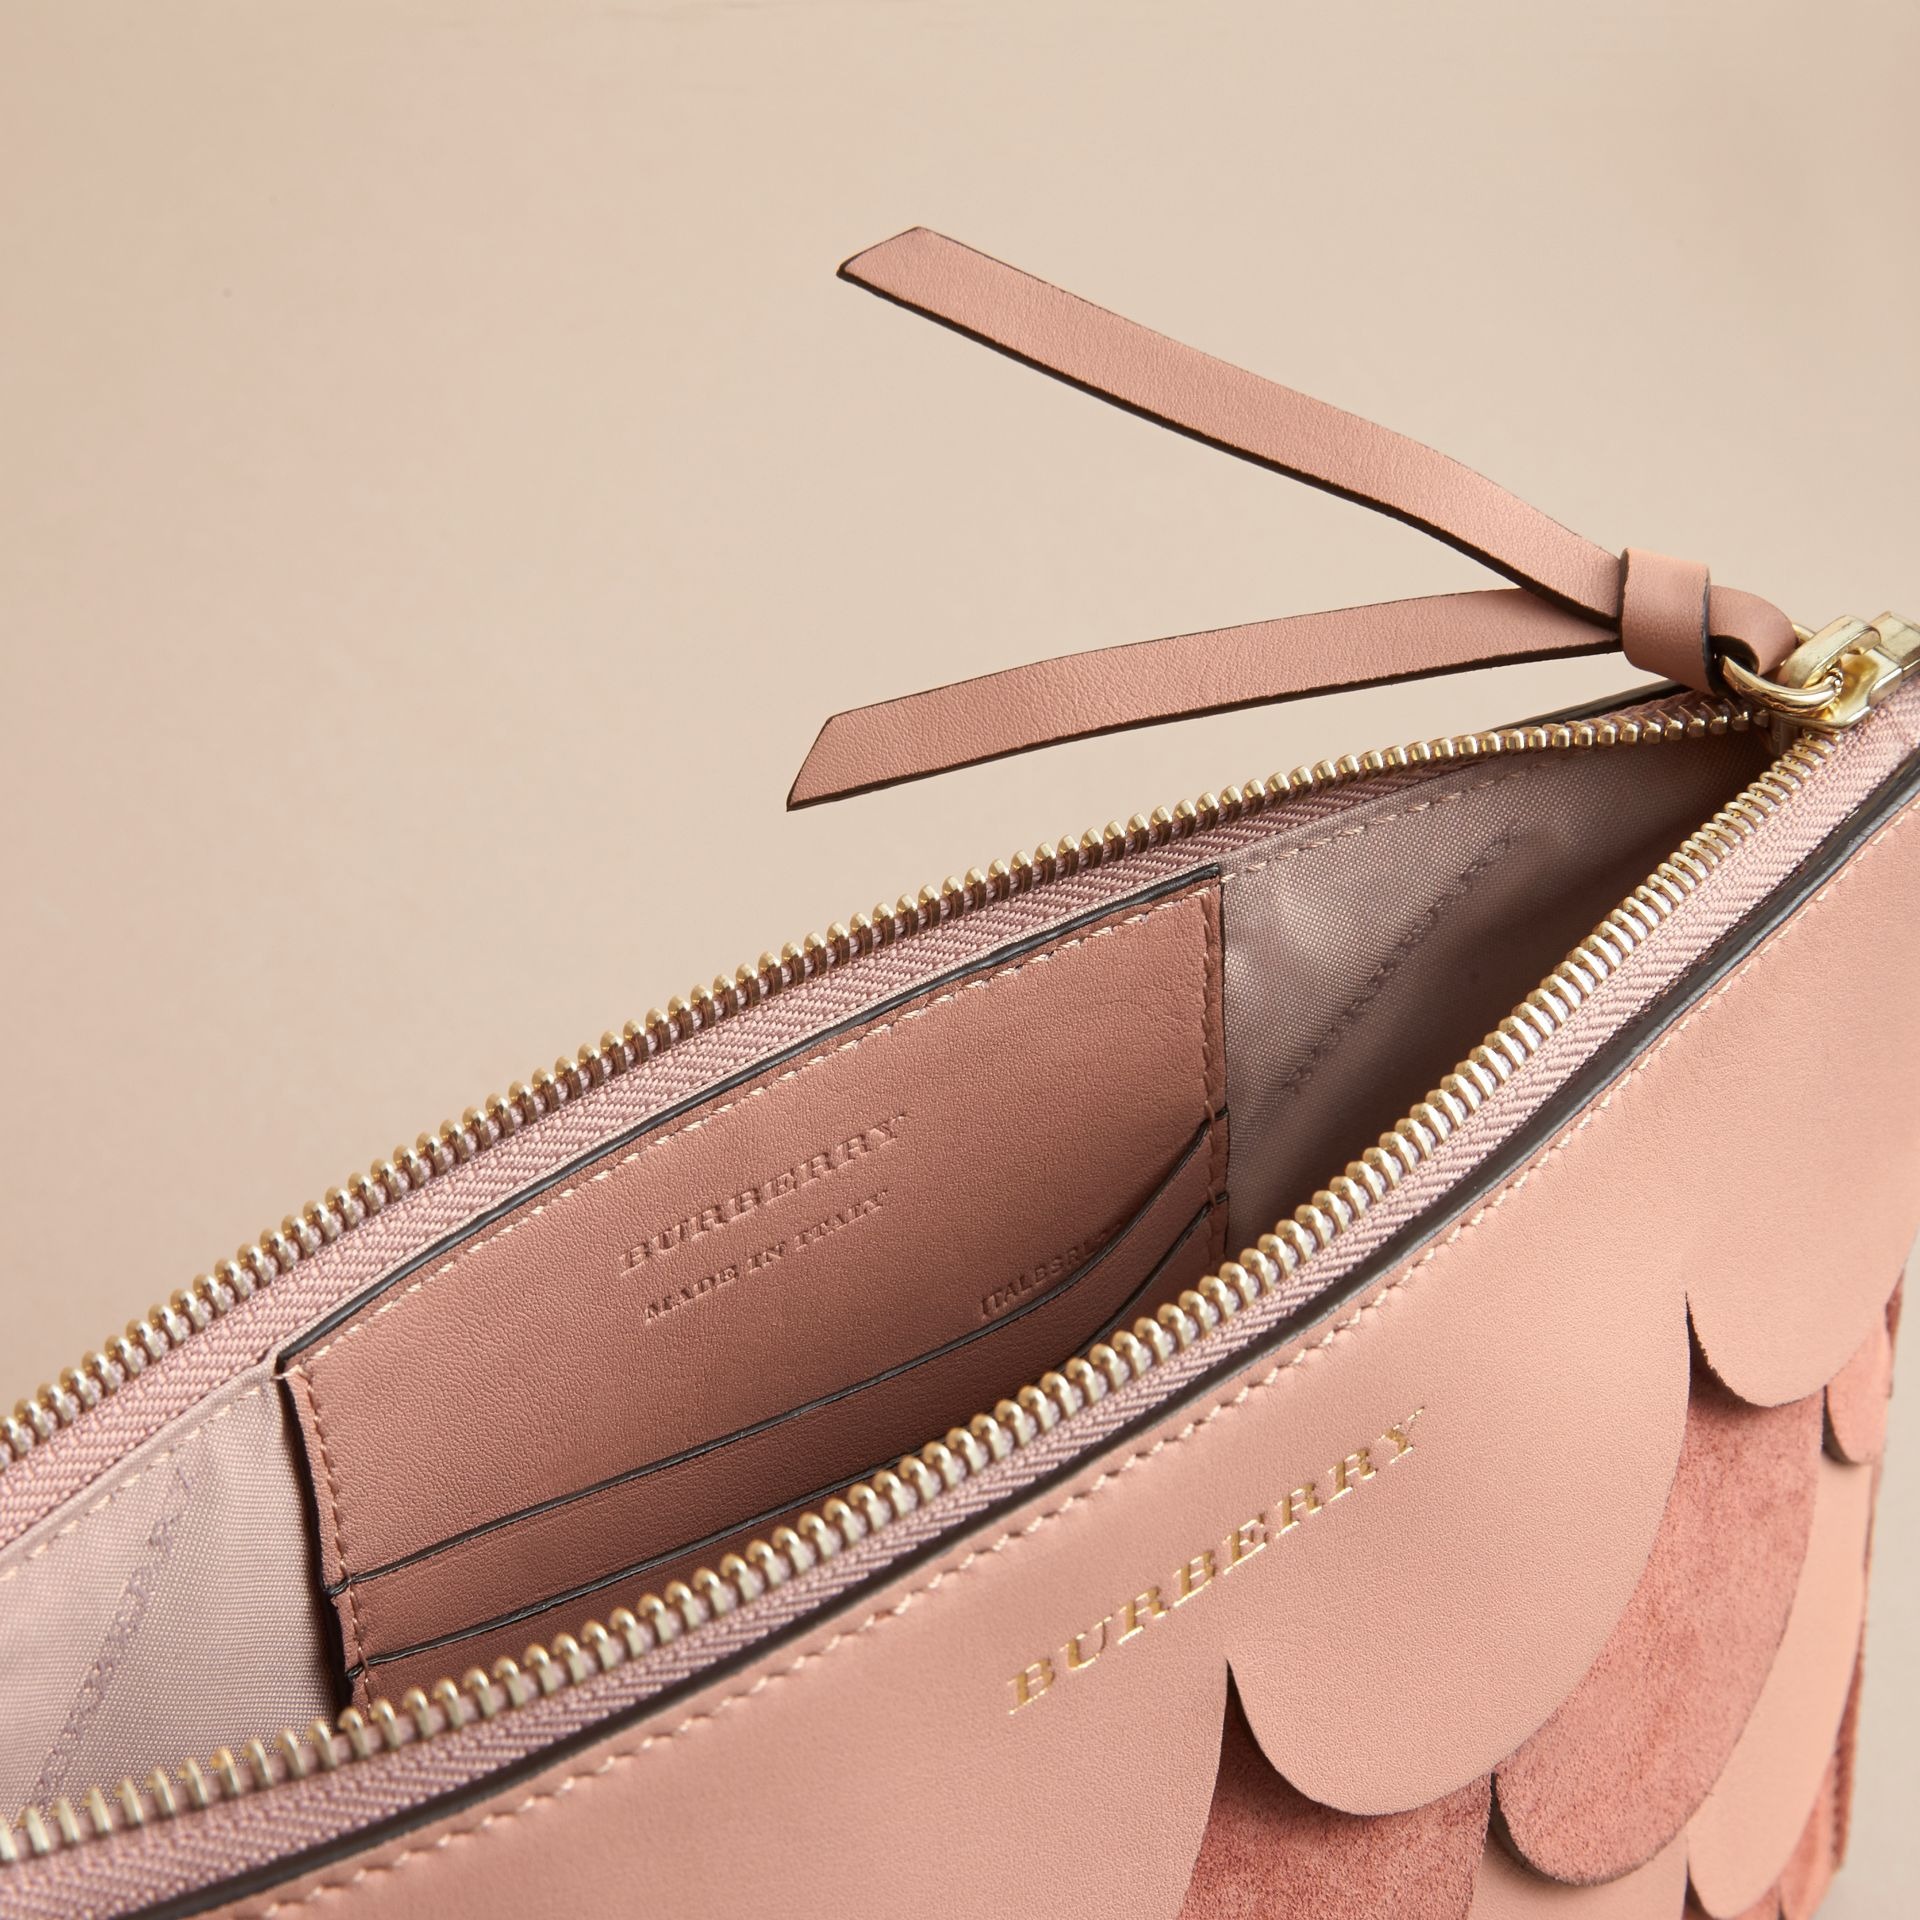 Two-tone Scalloped Leather and Suede Clutch Bag in Ash Rose - Women | Burberry Singapore - gallery image 6